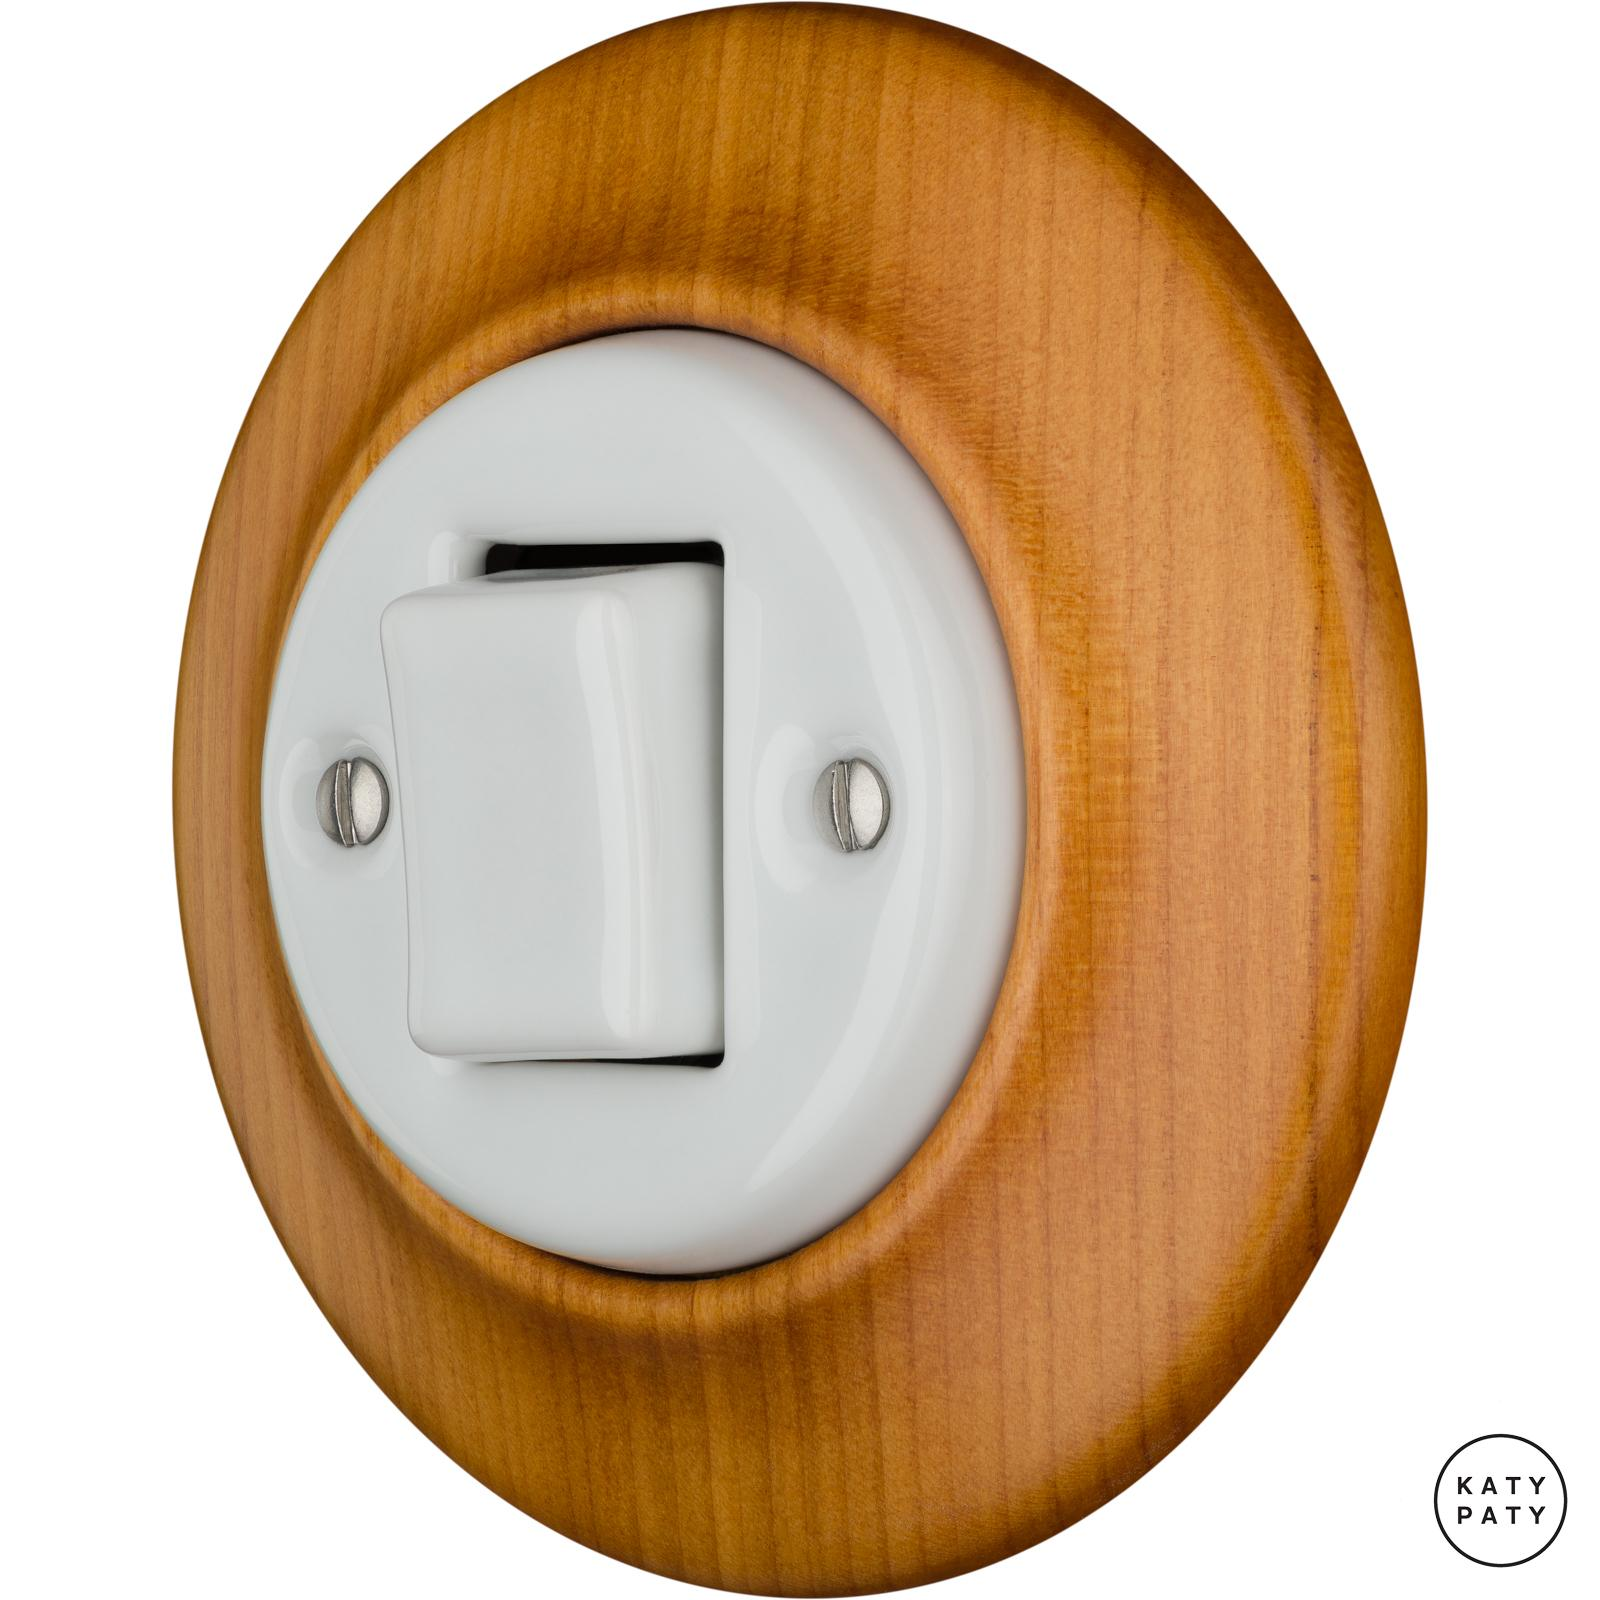 Porcelain switches - 1 key - FAT ()  - PADELUS | Katy Paty